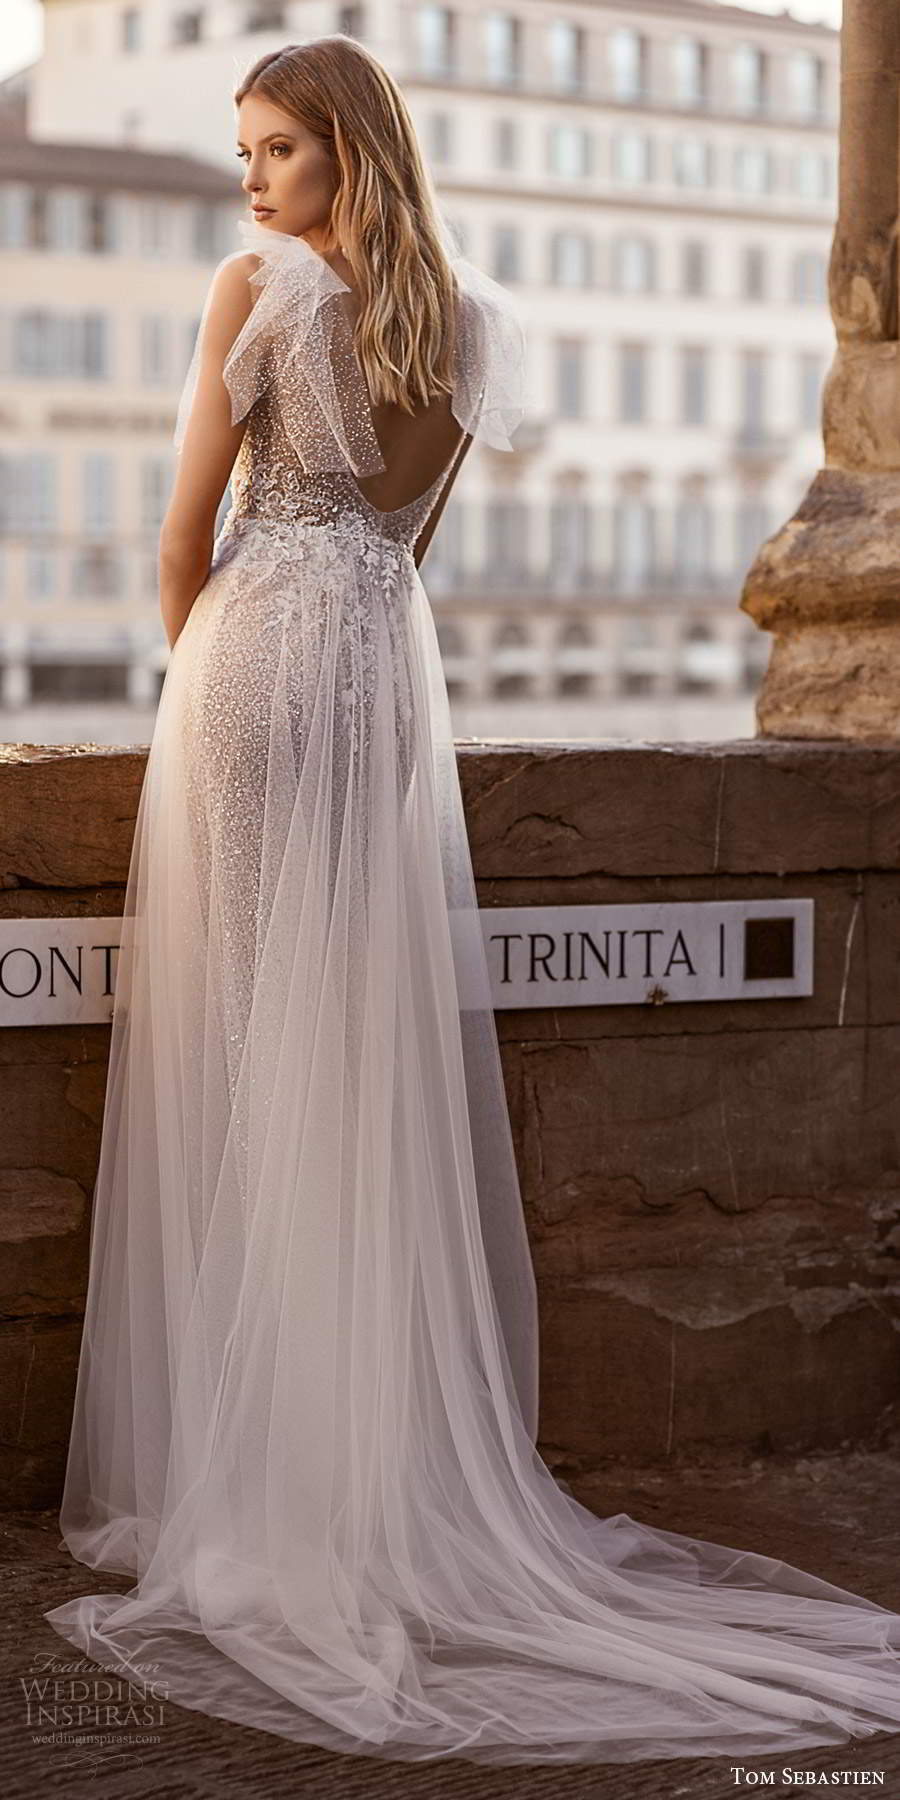 tom sebastien 2020 bridal sleeveless bow straps plunging v neckline fully embellished soft a line ball gown wedding dress slit skirt chapel train scoop back (4) bv